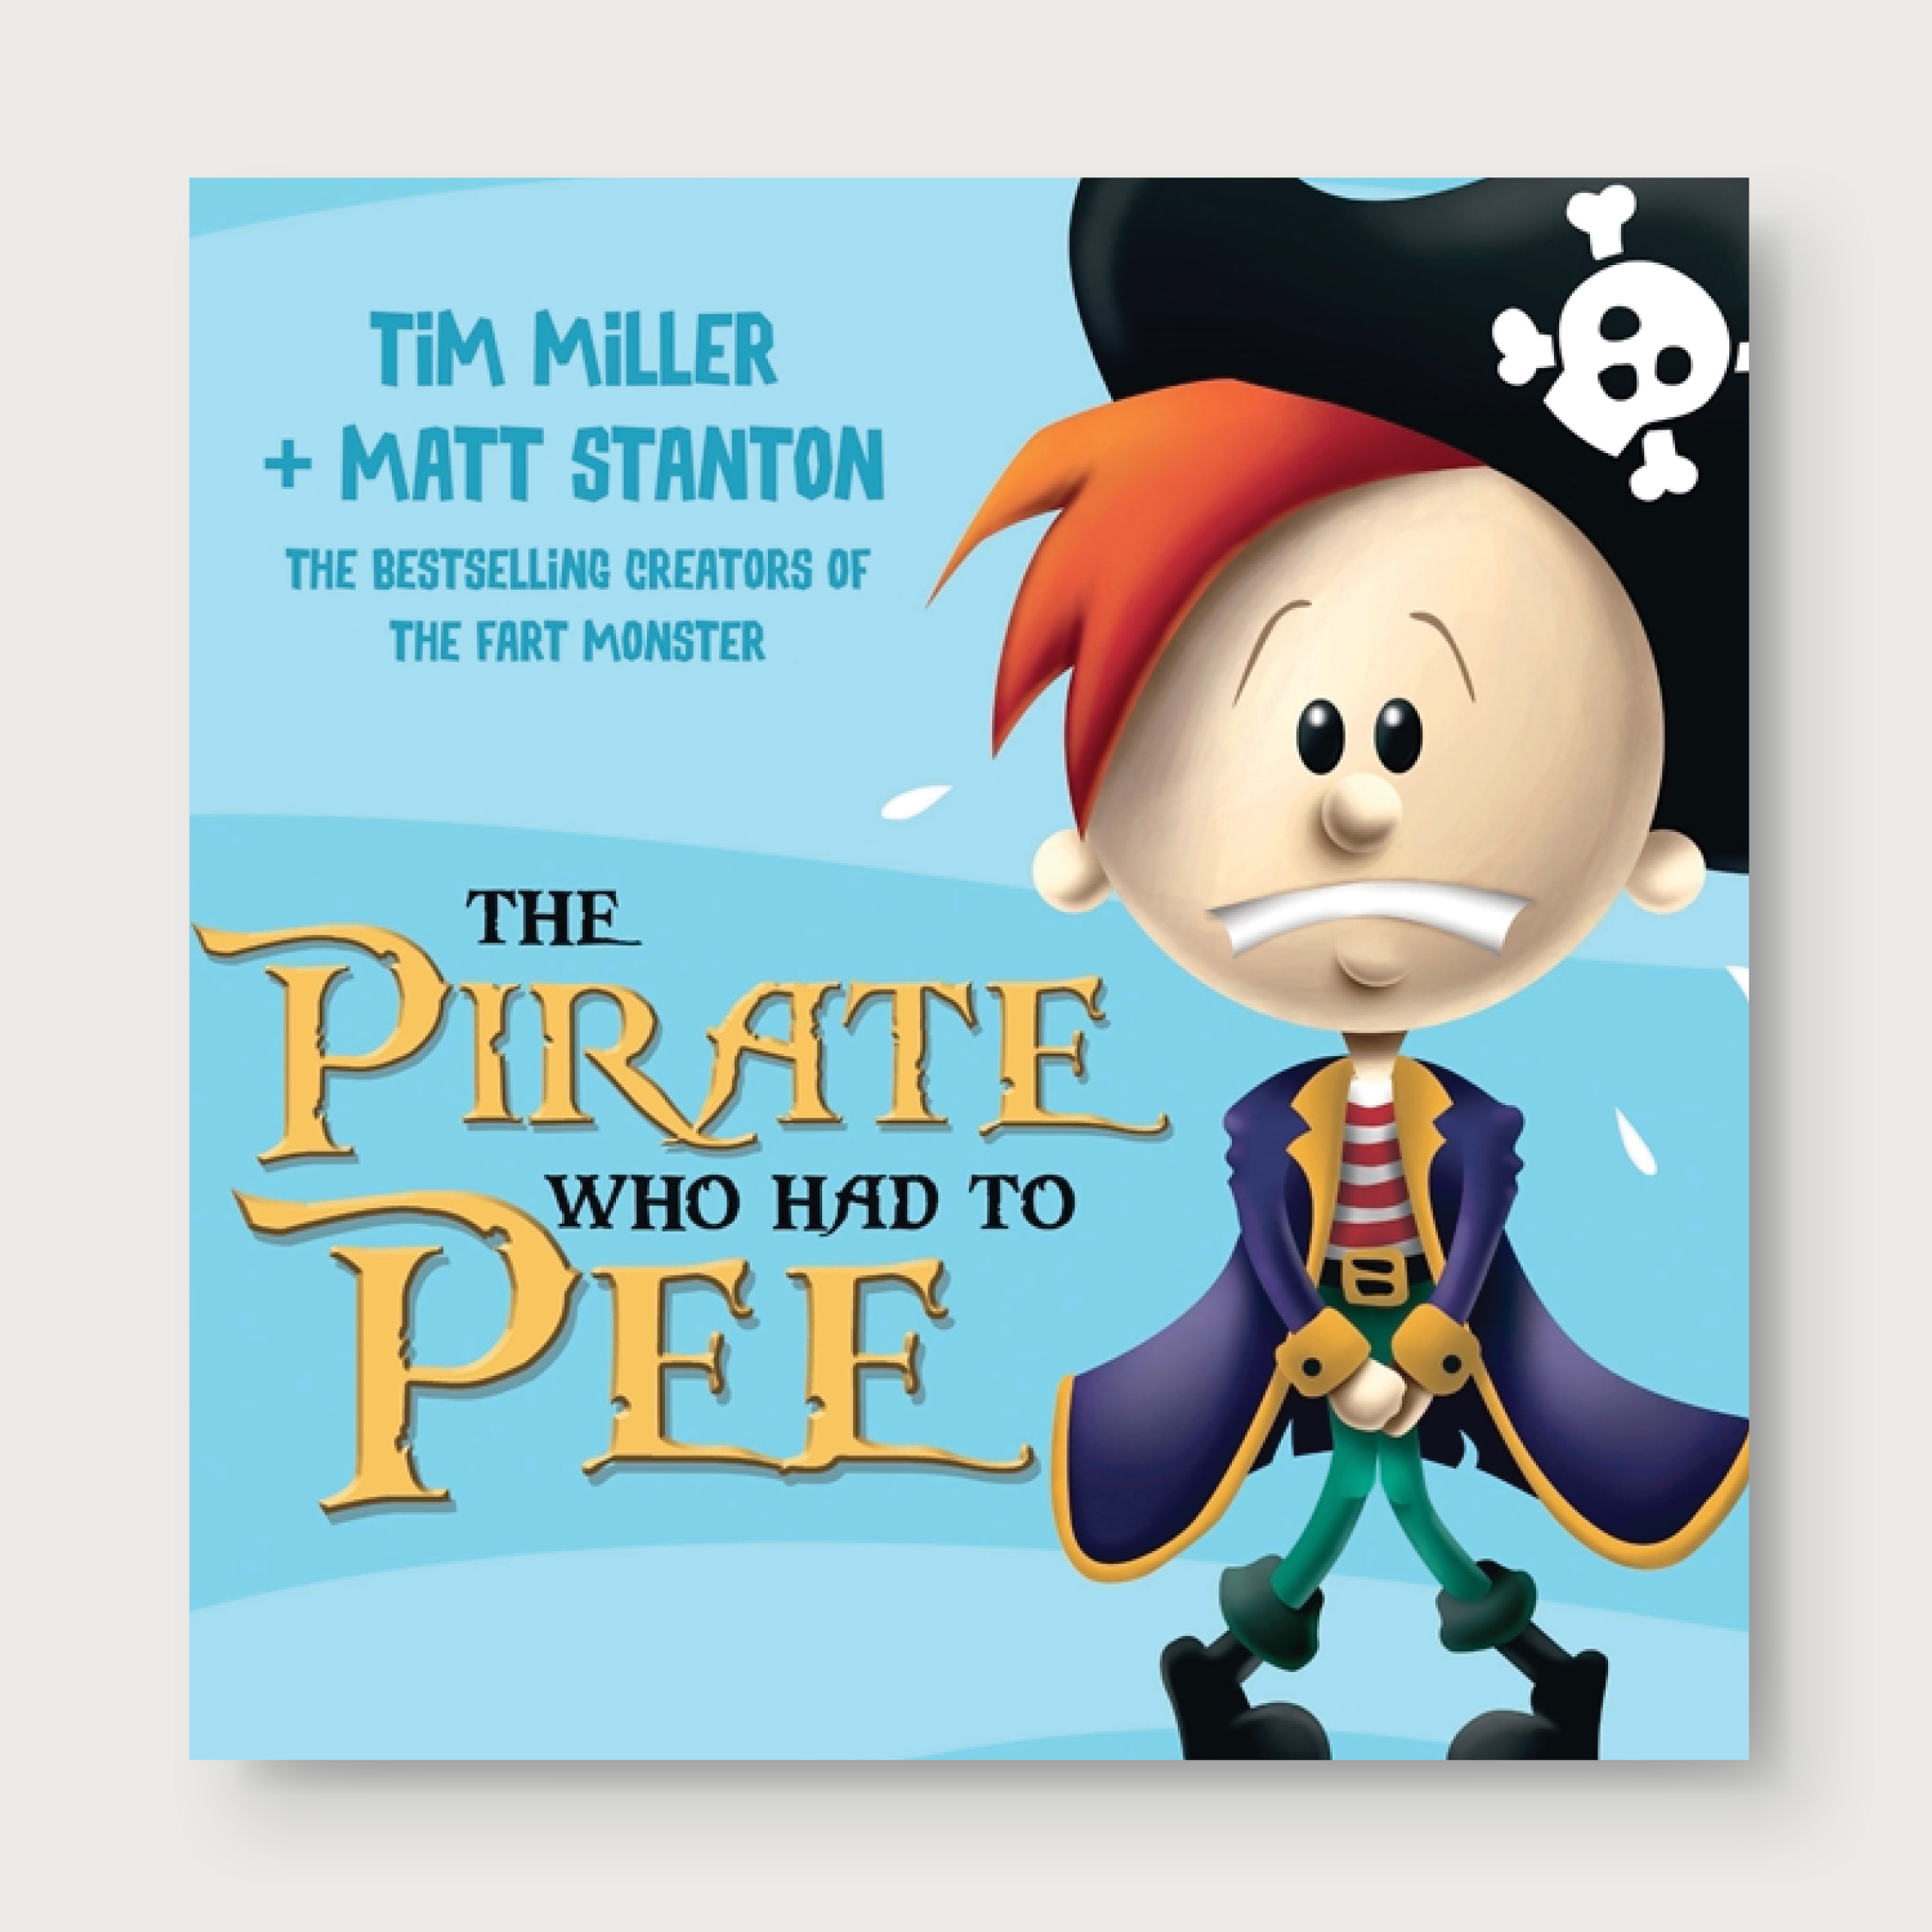 From the bestselling authors of There Is a Monster Under My Bed Who Farts!    Pirate Pete had to pee as he sailed across the ocean... The toilet's broken onboard Captain Bones' ship and Pirate Pete needs to pee! It's a race back to town across a vast amount of water. With the constant splashing, dripping and swirling, will Pete be able to hold on? Ages: 2+